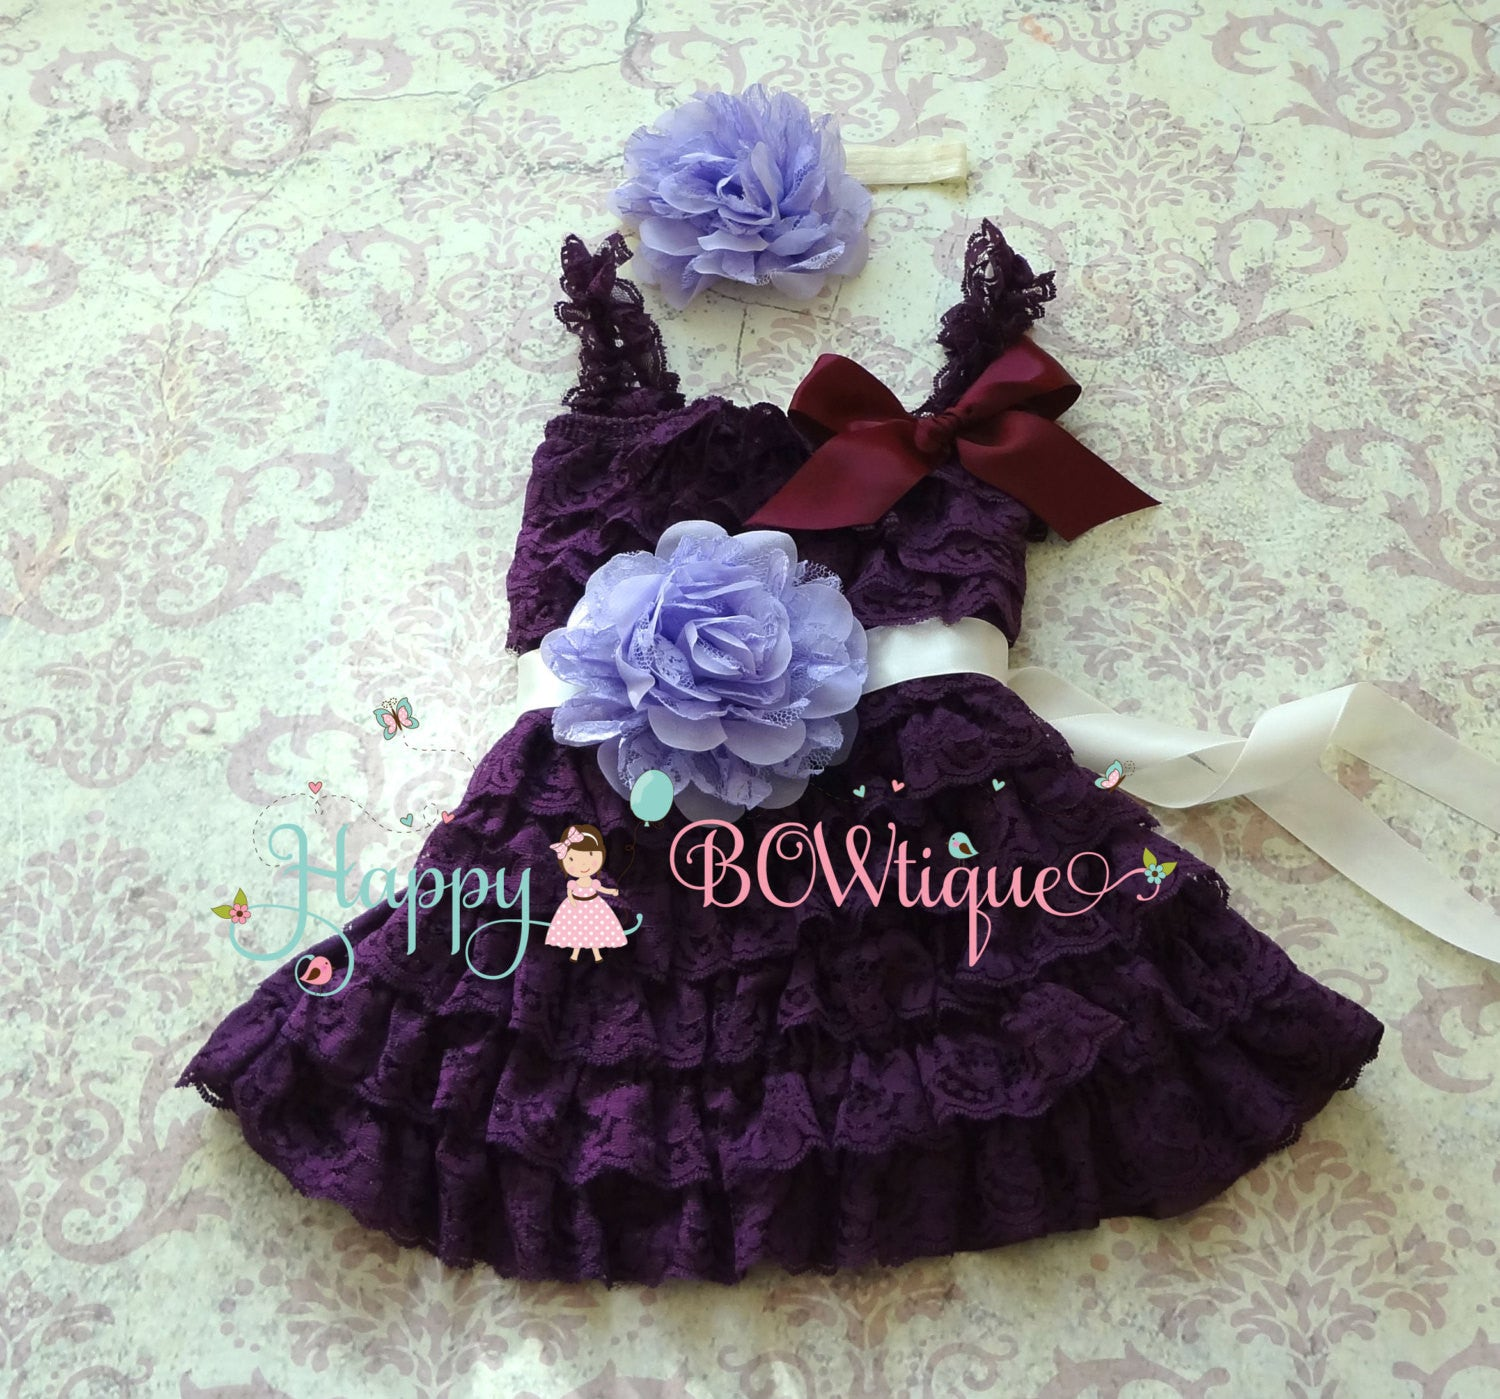 Girl's Purple Dress/ Girl's Purple Lavender Plum Dress set - Happy BOWtique - children's clothing, Baby Girl clothing